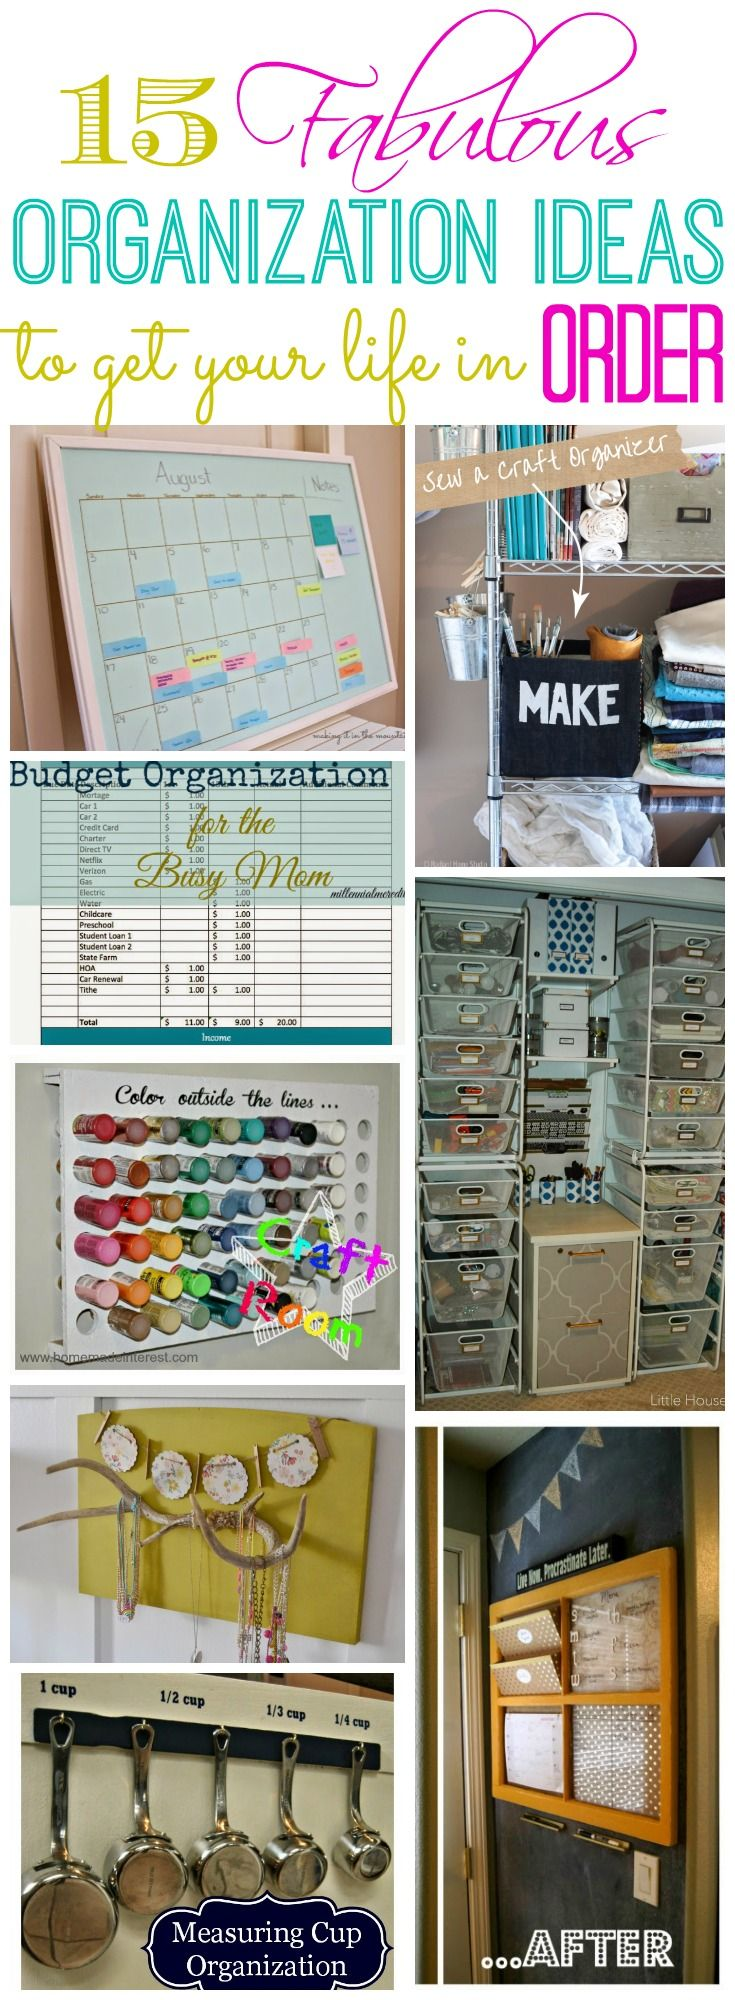 '15 Fabulous Organization Ideas to Get Your Life in Order...!' (via The Happy Housie)